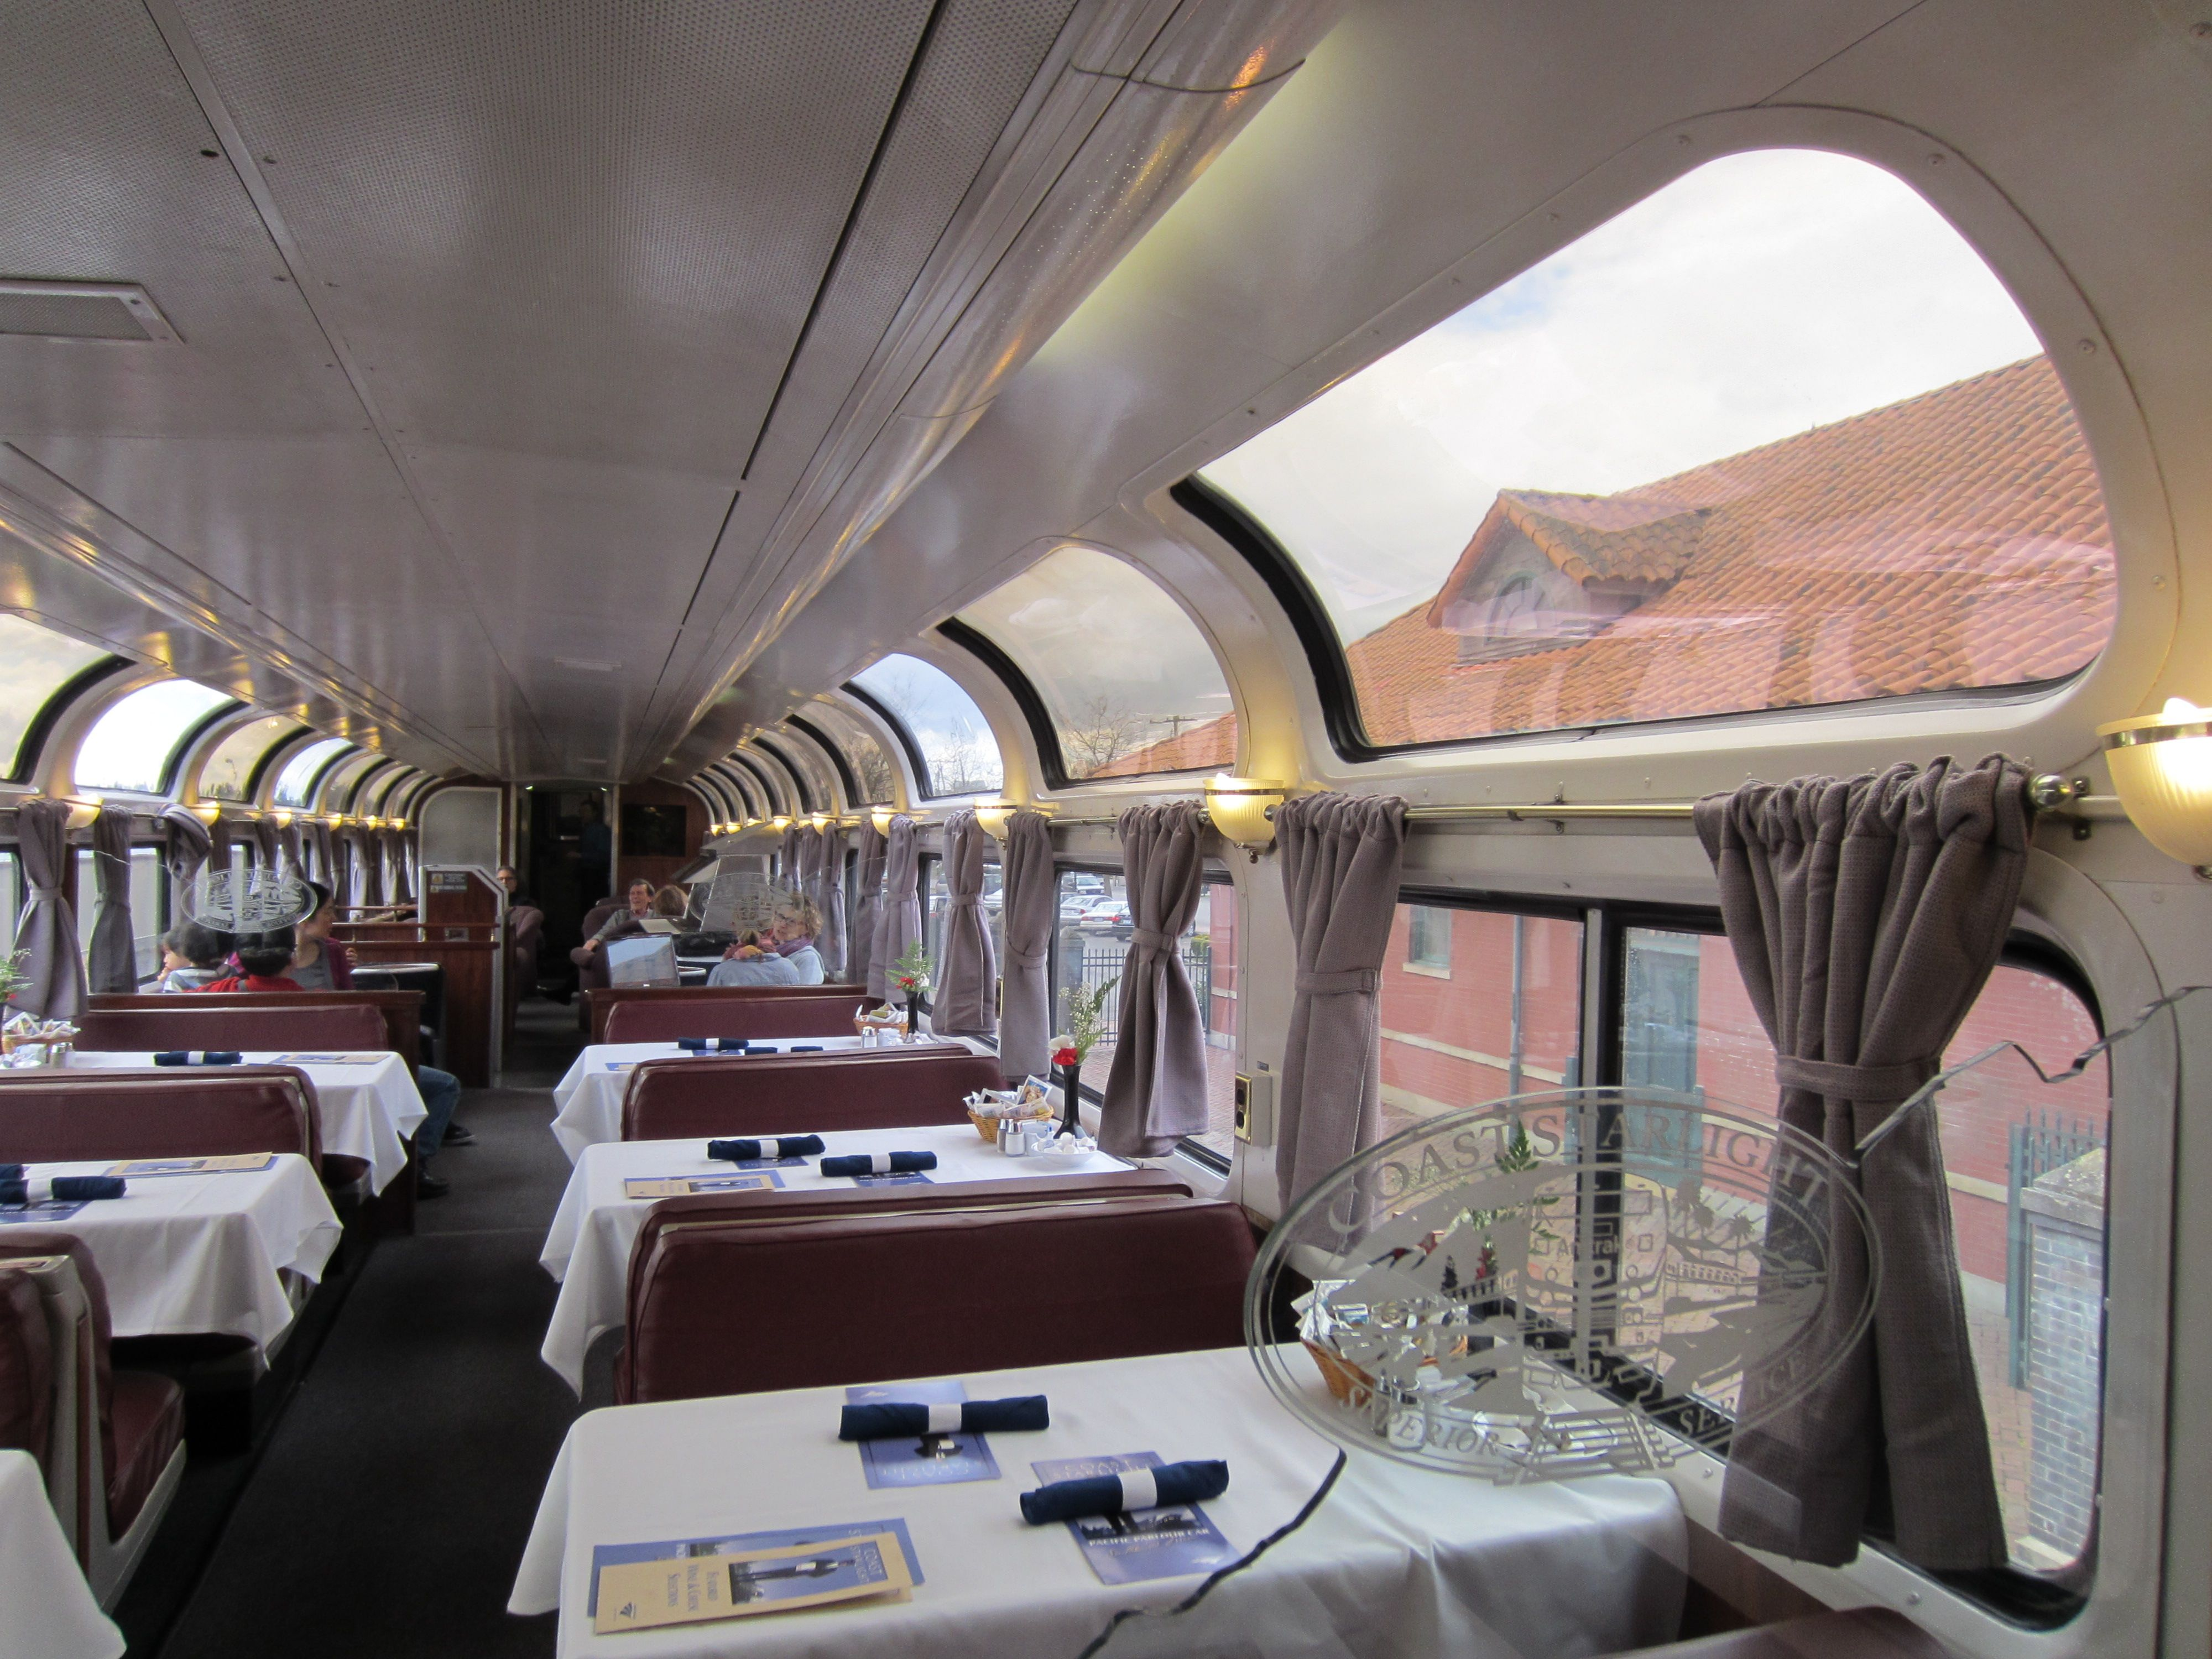 Amtrak's Pacific Parlor Car on the Coast Starlight, March